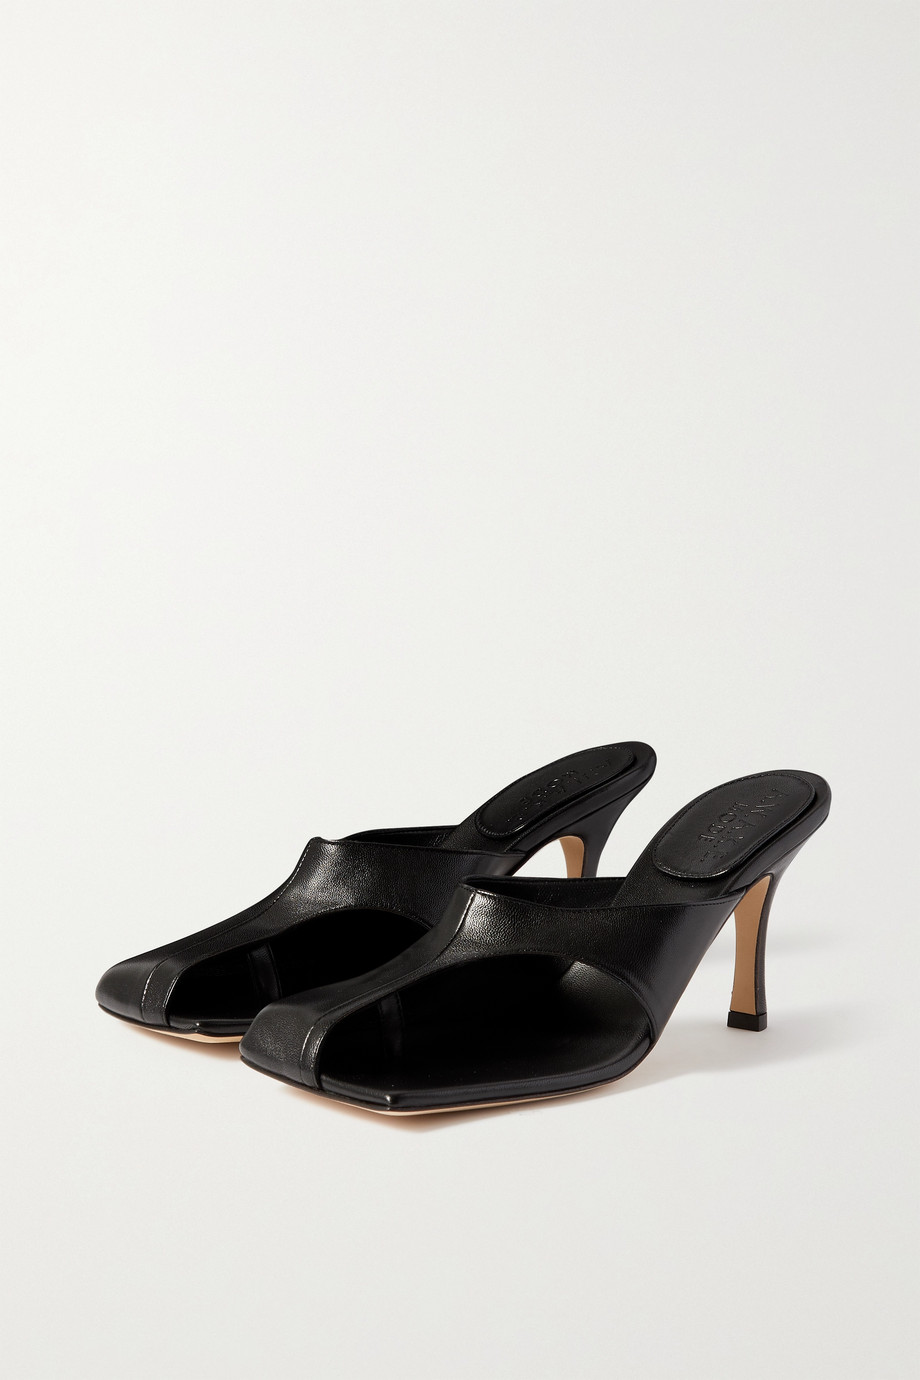 A.W.A.K.E. MODE Mary cutout leather mules